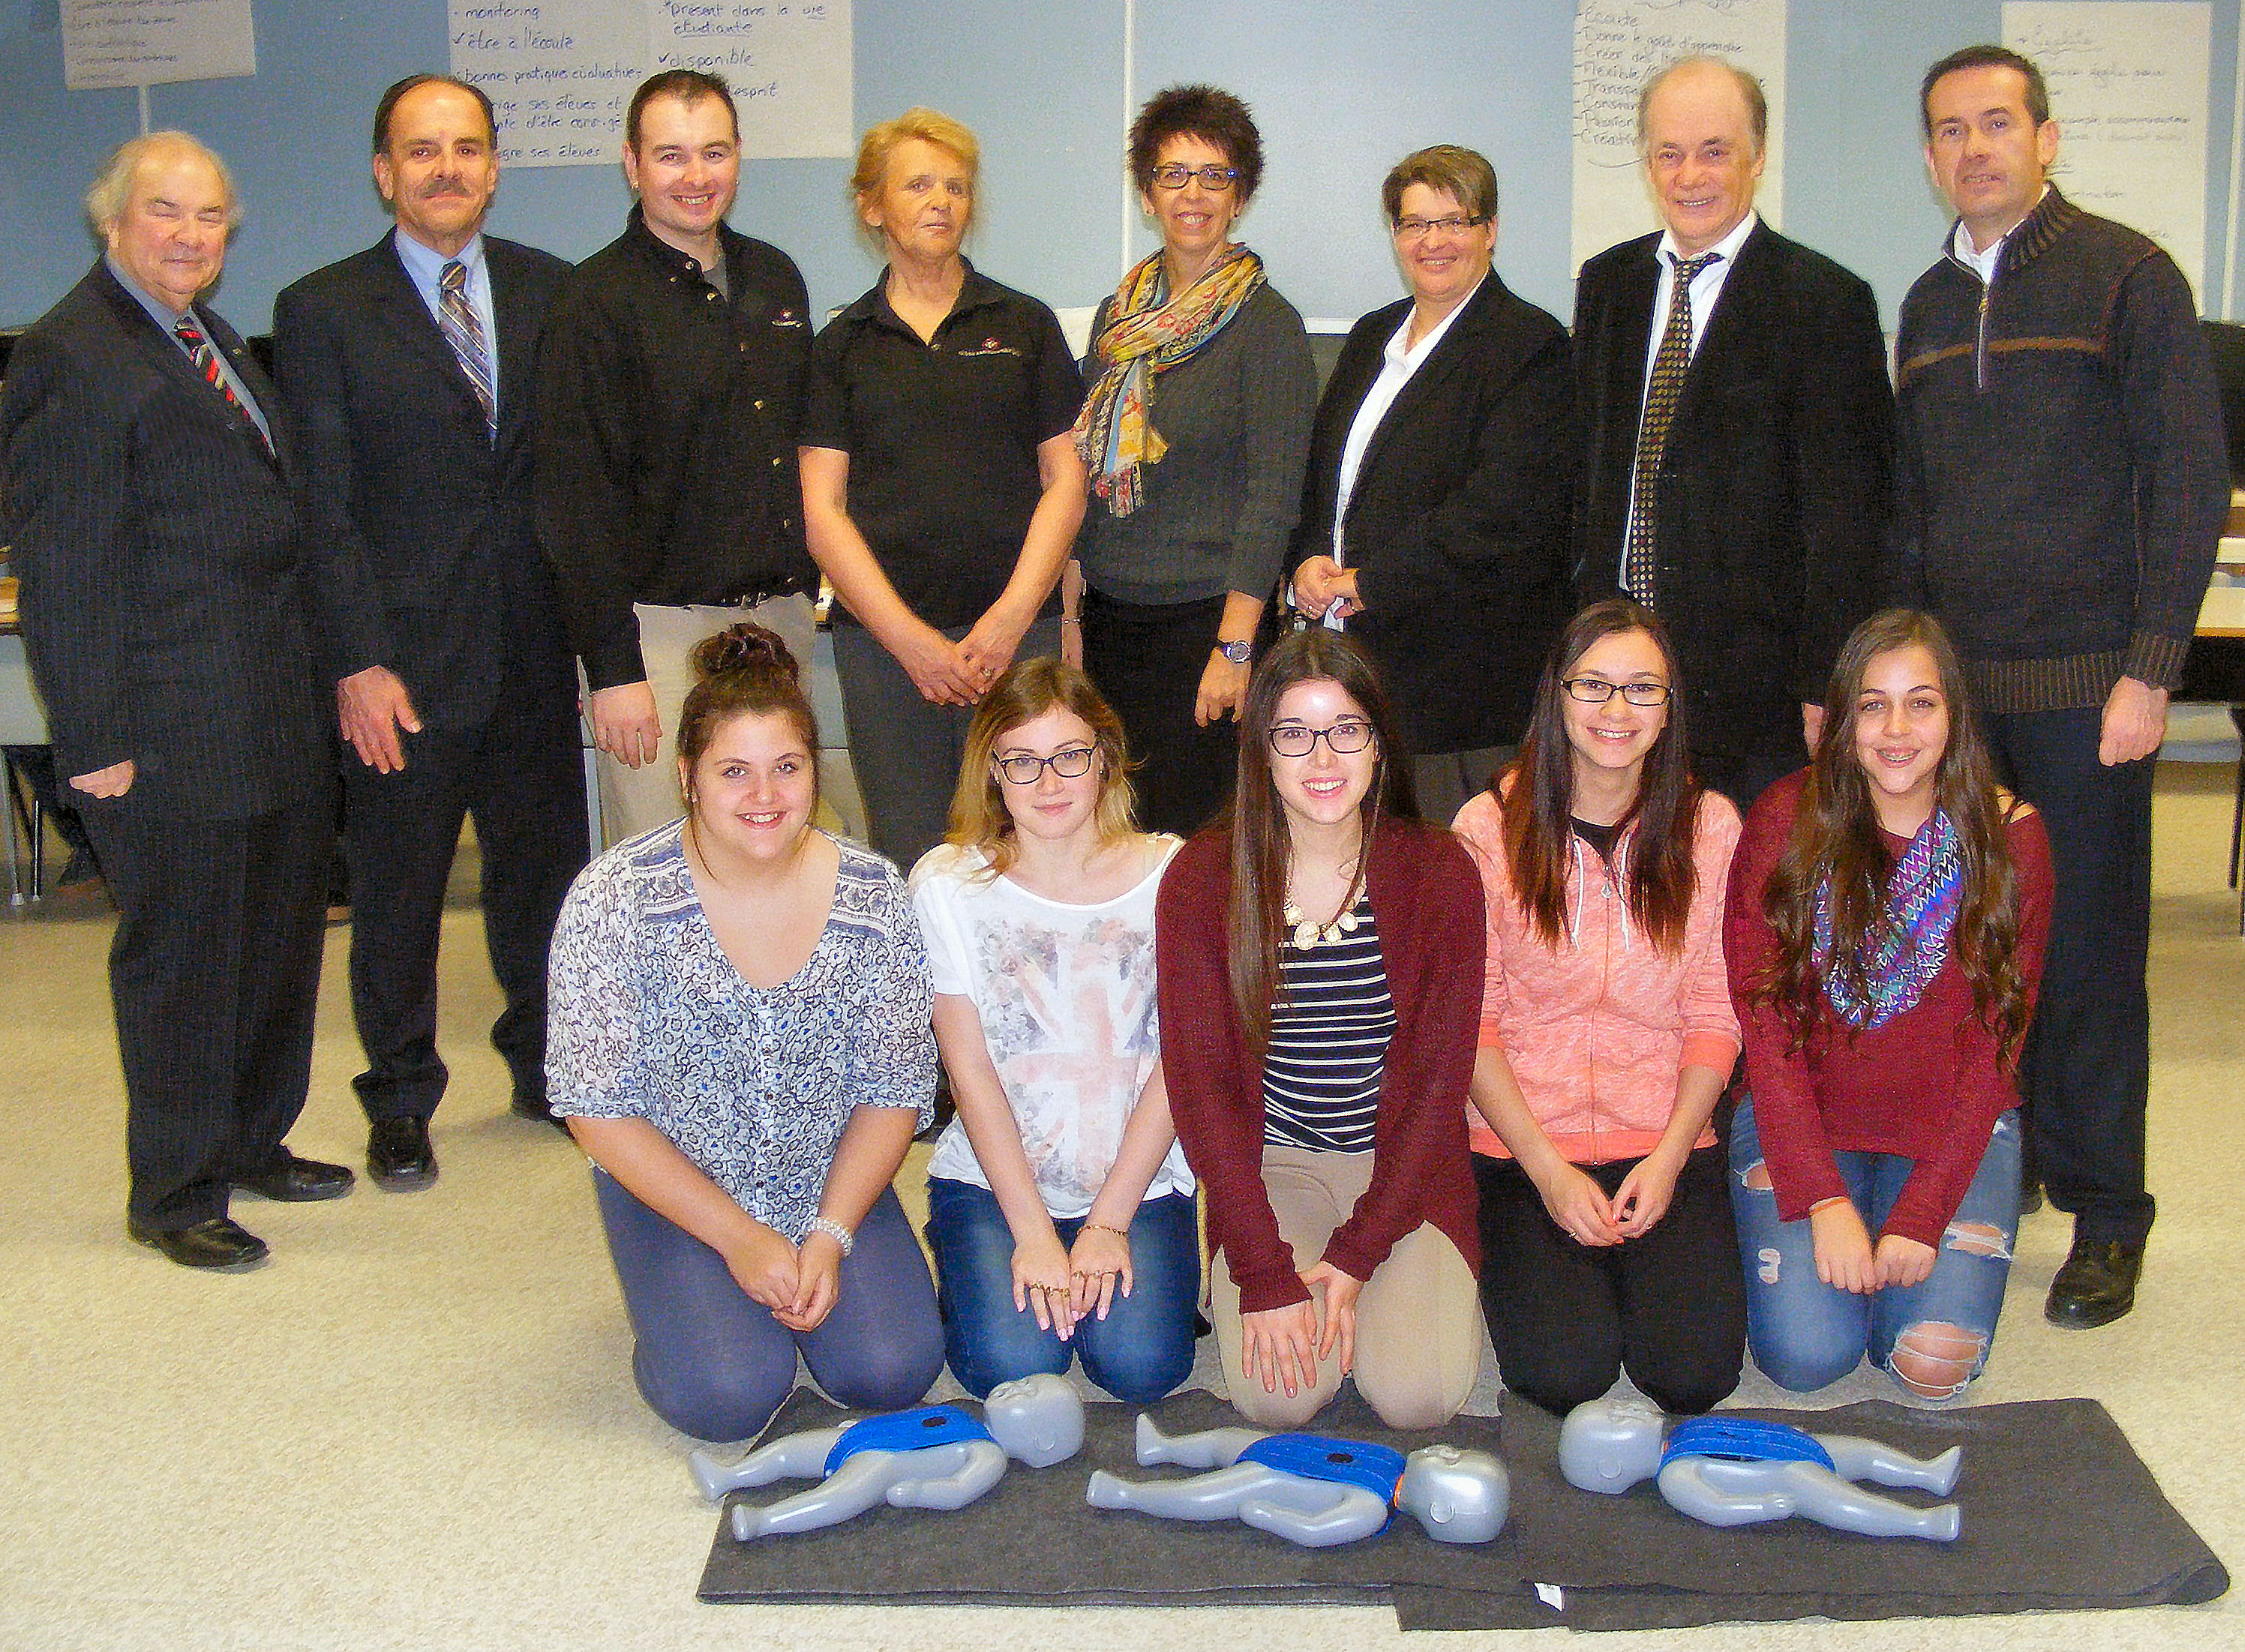 St. John Ambulance offers free first aid, CPR training to Grade 10 students